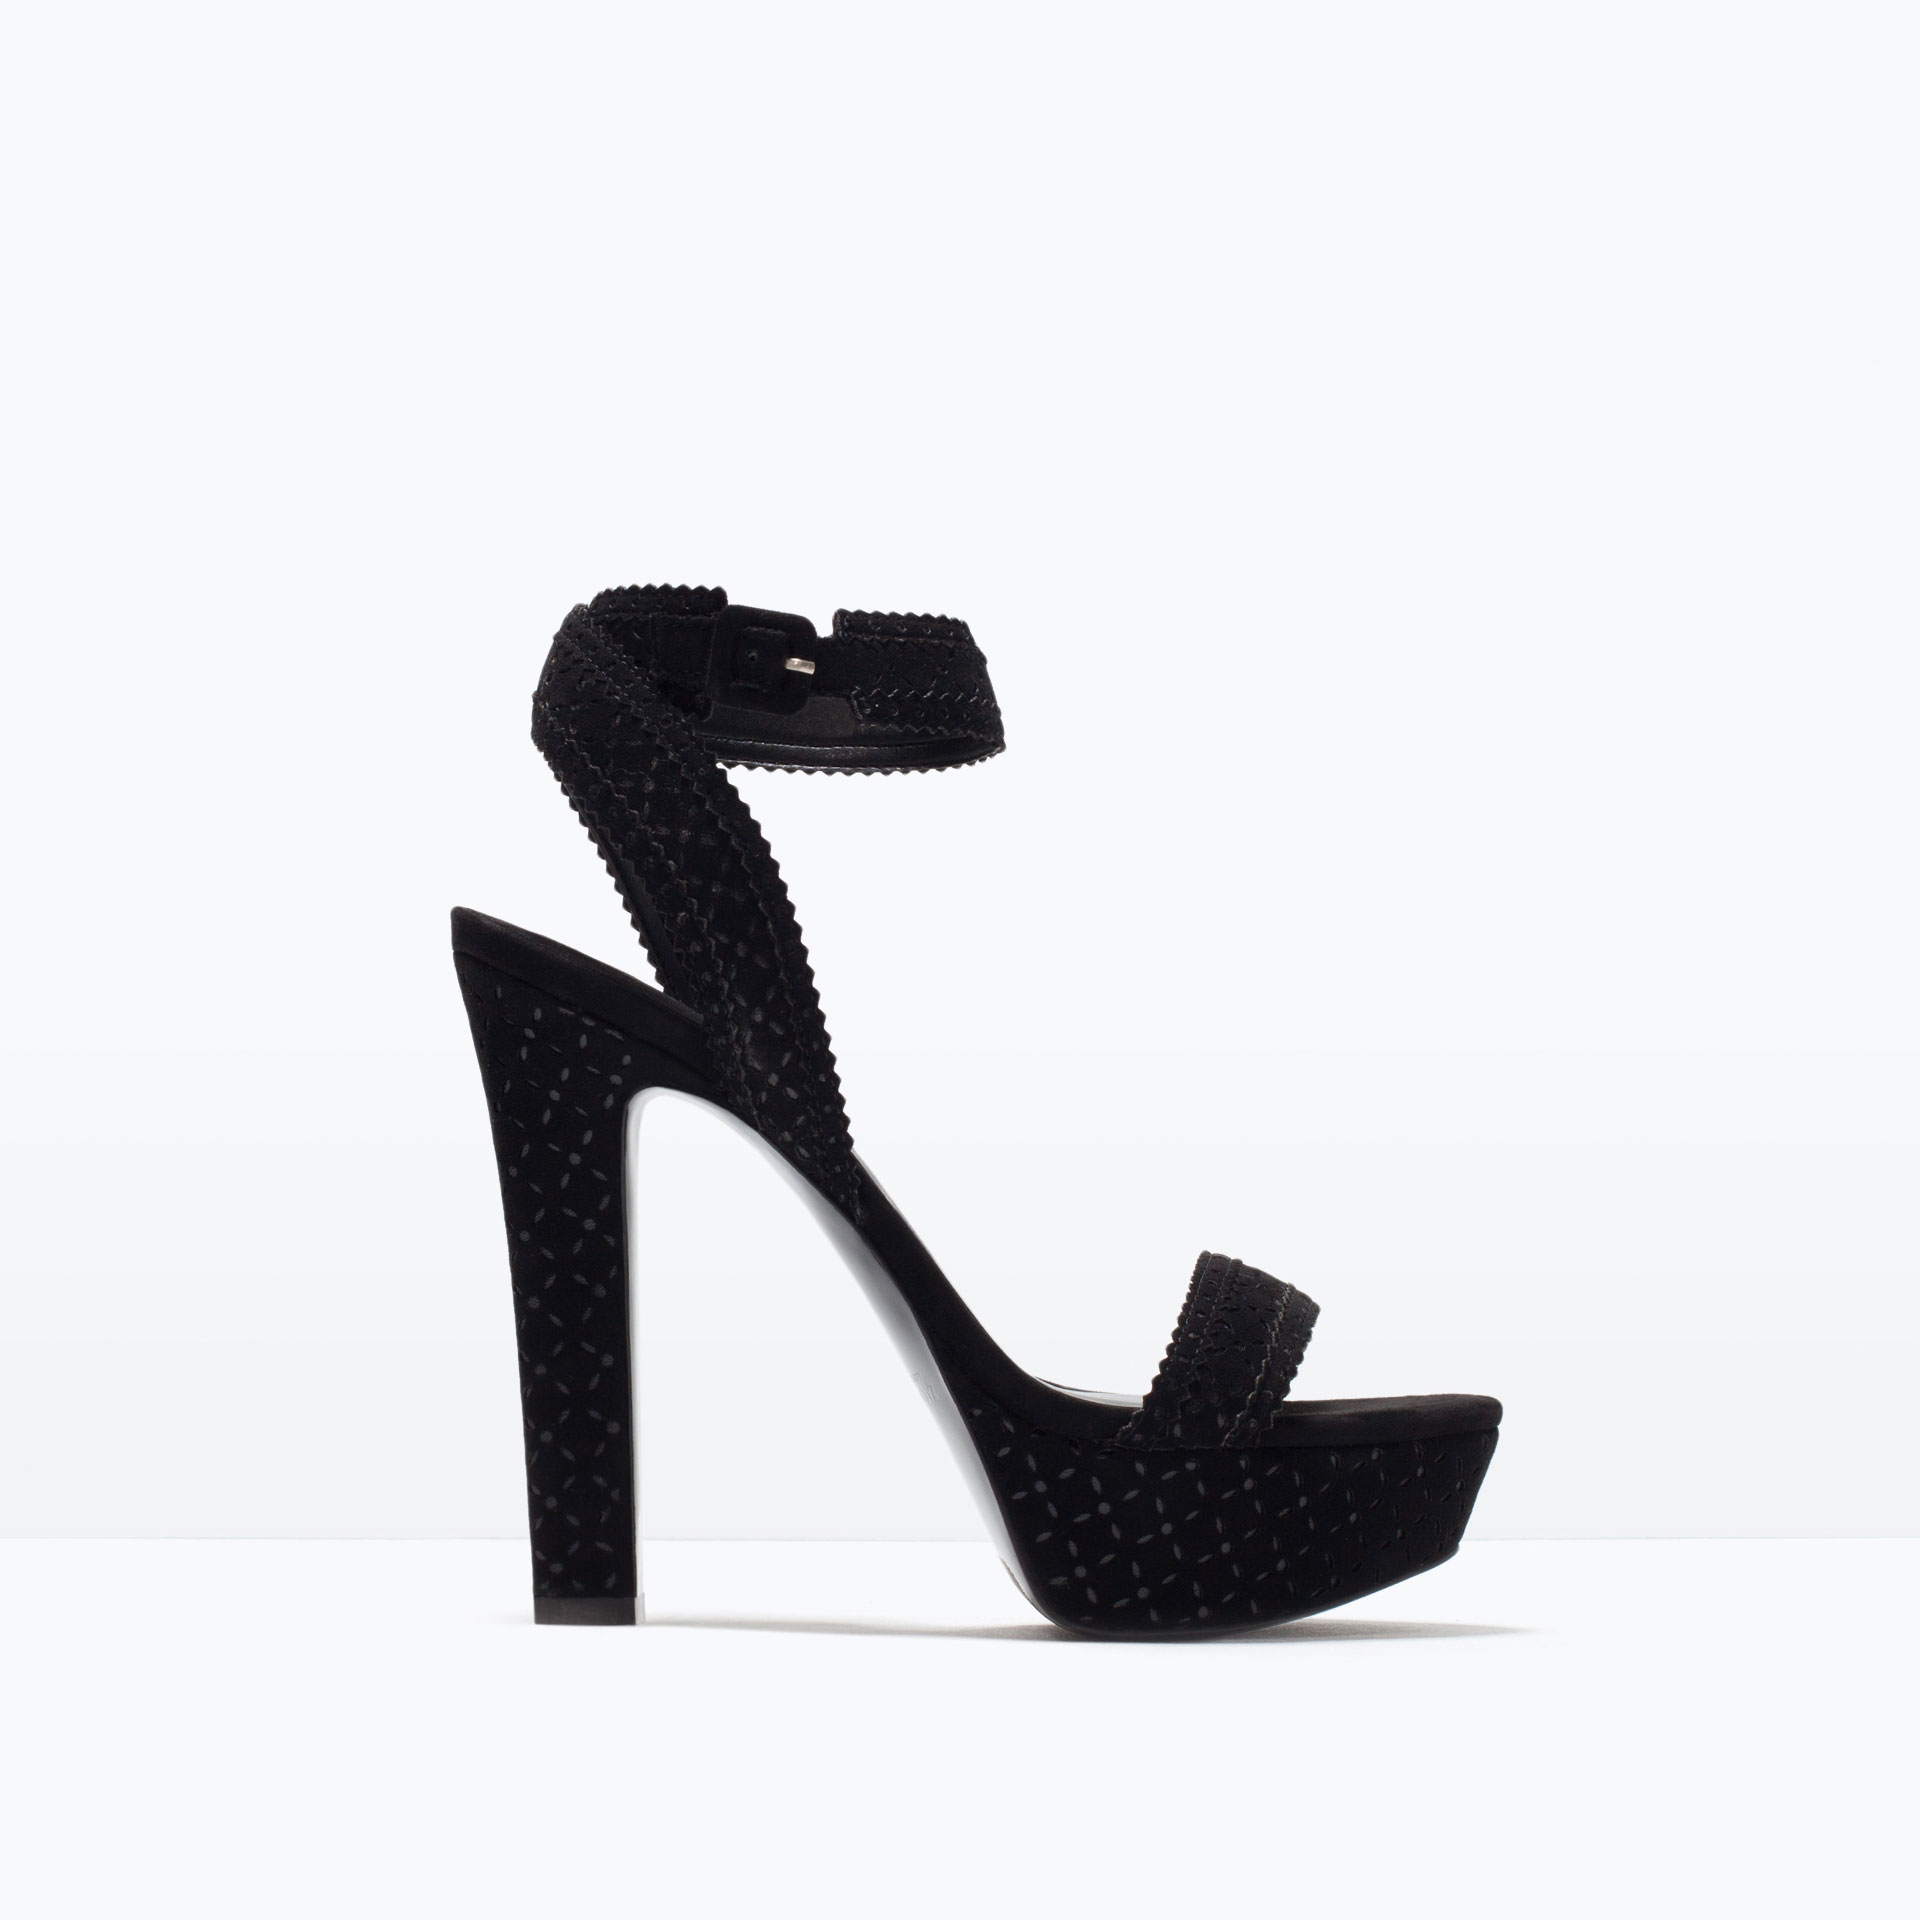 AXE Platform Block Heel Sandals - Black Leather Style Sold by Spy Love Buy £